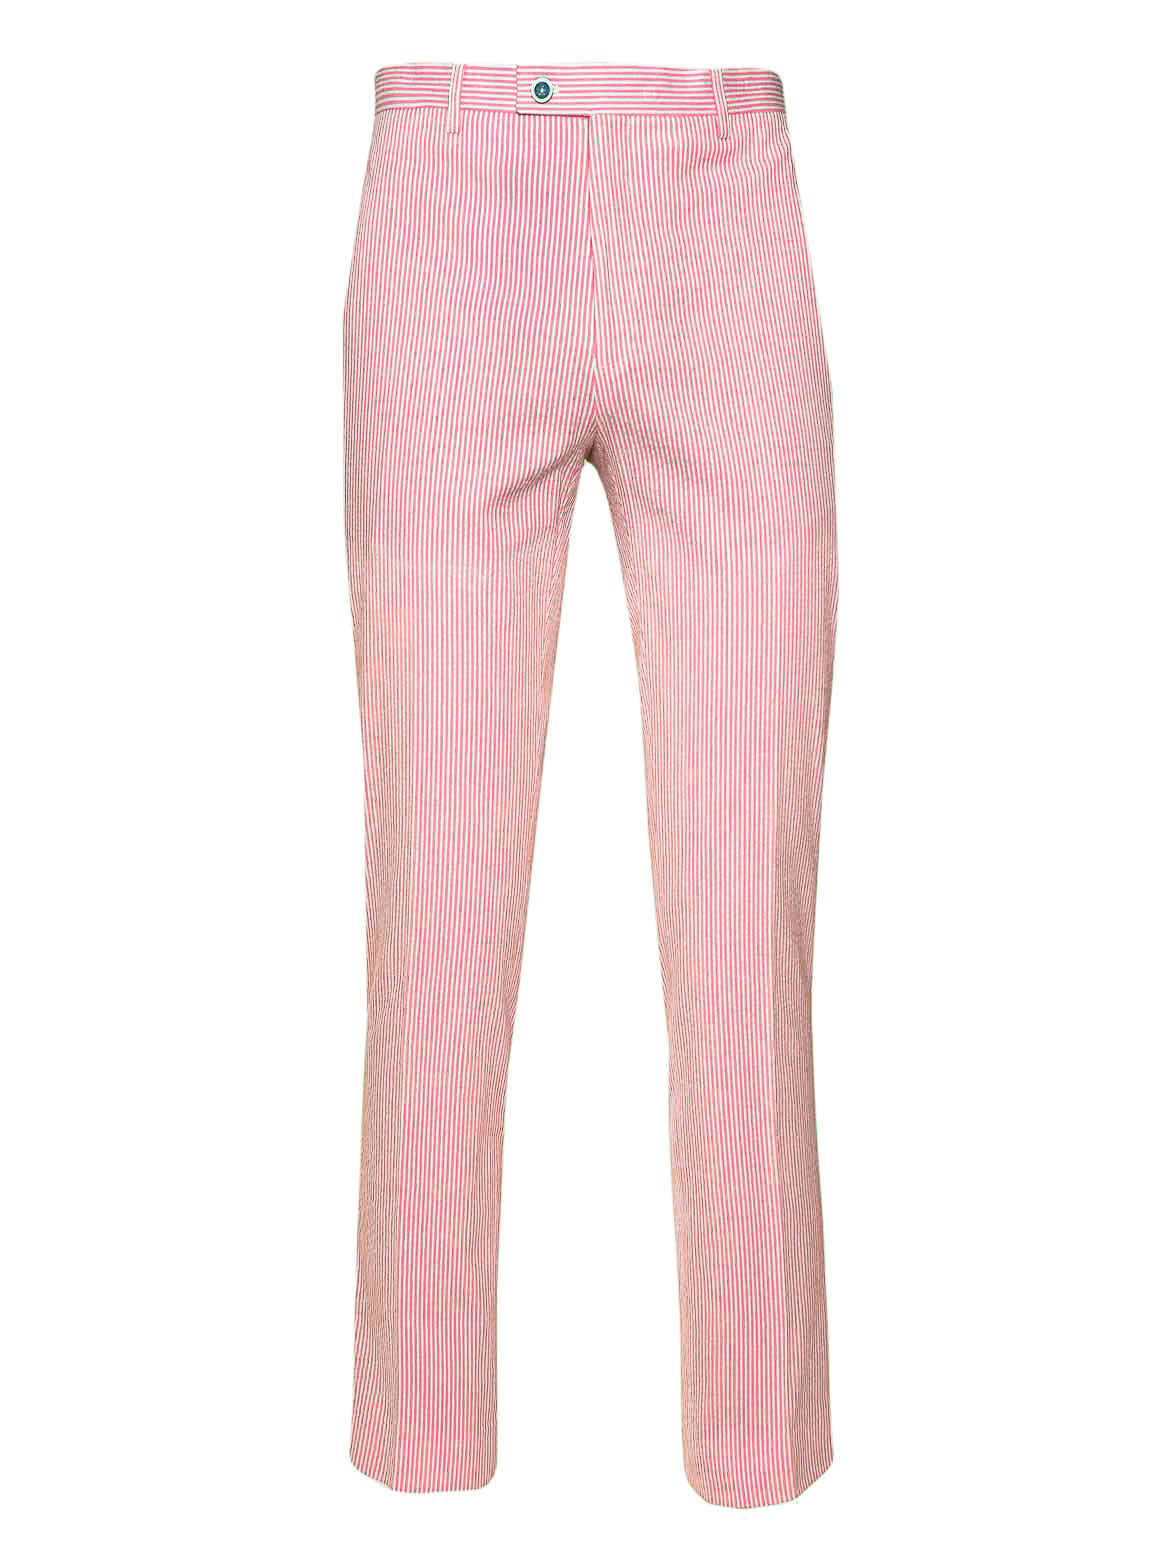 Downing Pants - Slim - Pink & White Seersucker